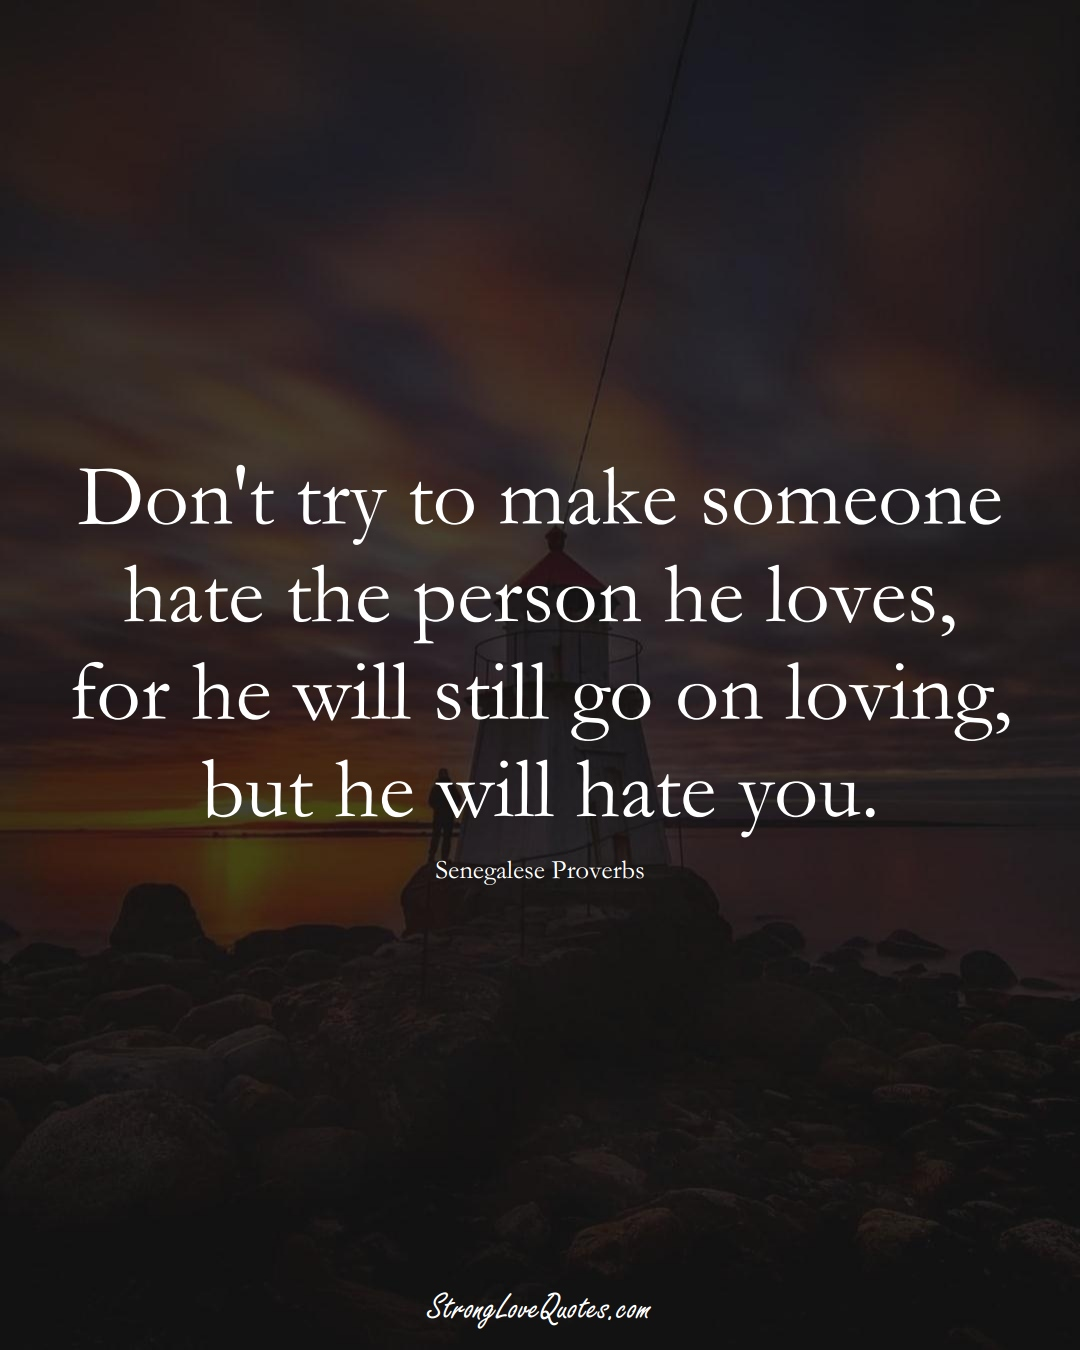 Don't try to make someone hate the person he loves, for he will still go on loving, but he will hate you. (Senegalese Sayings);  #AfricanSayings